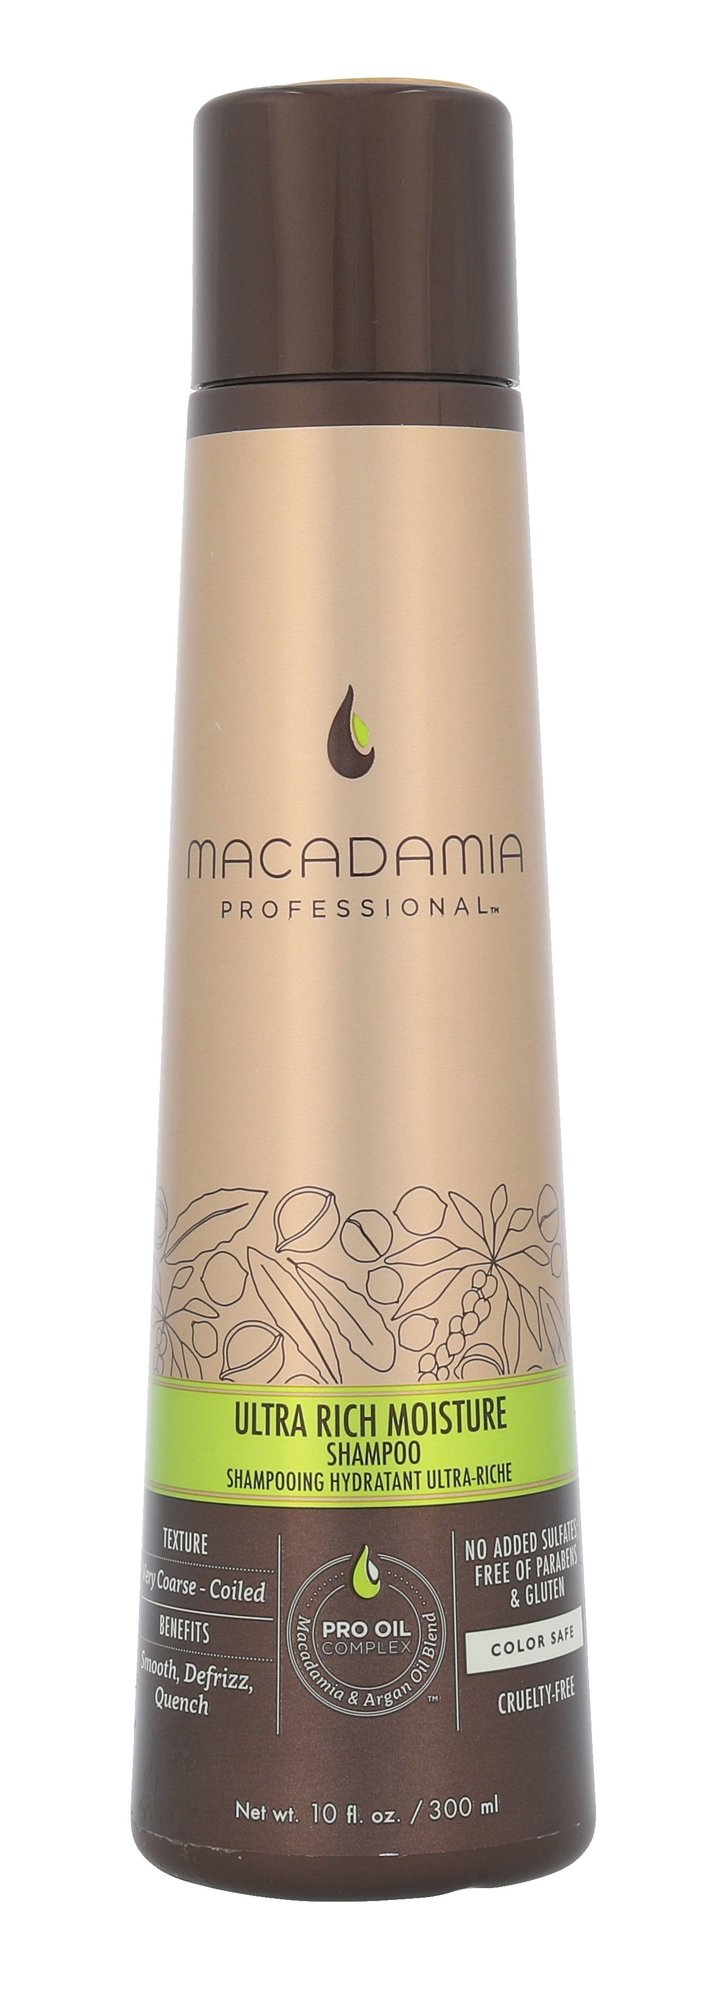 Macadamia Professional Ultra Rich Moisture Cosmetic 300ml